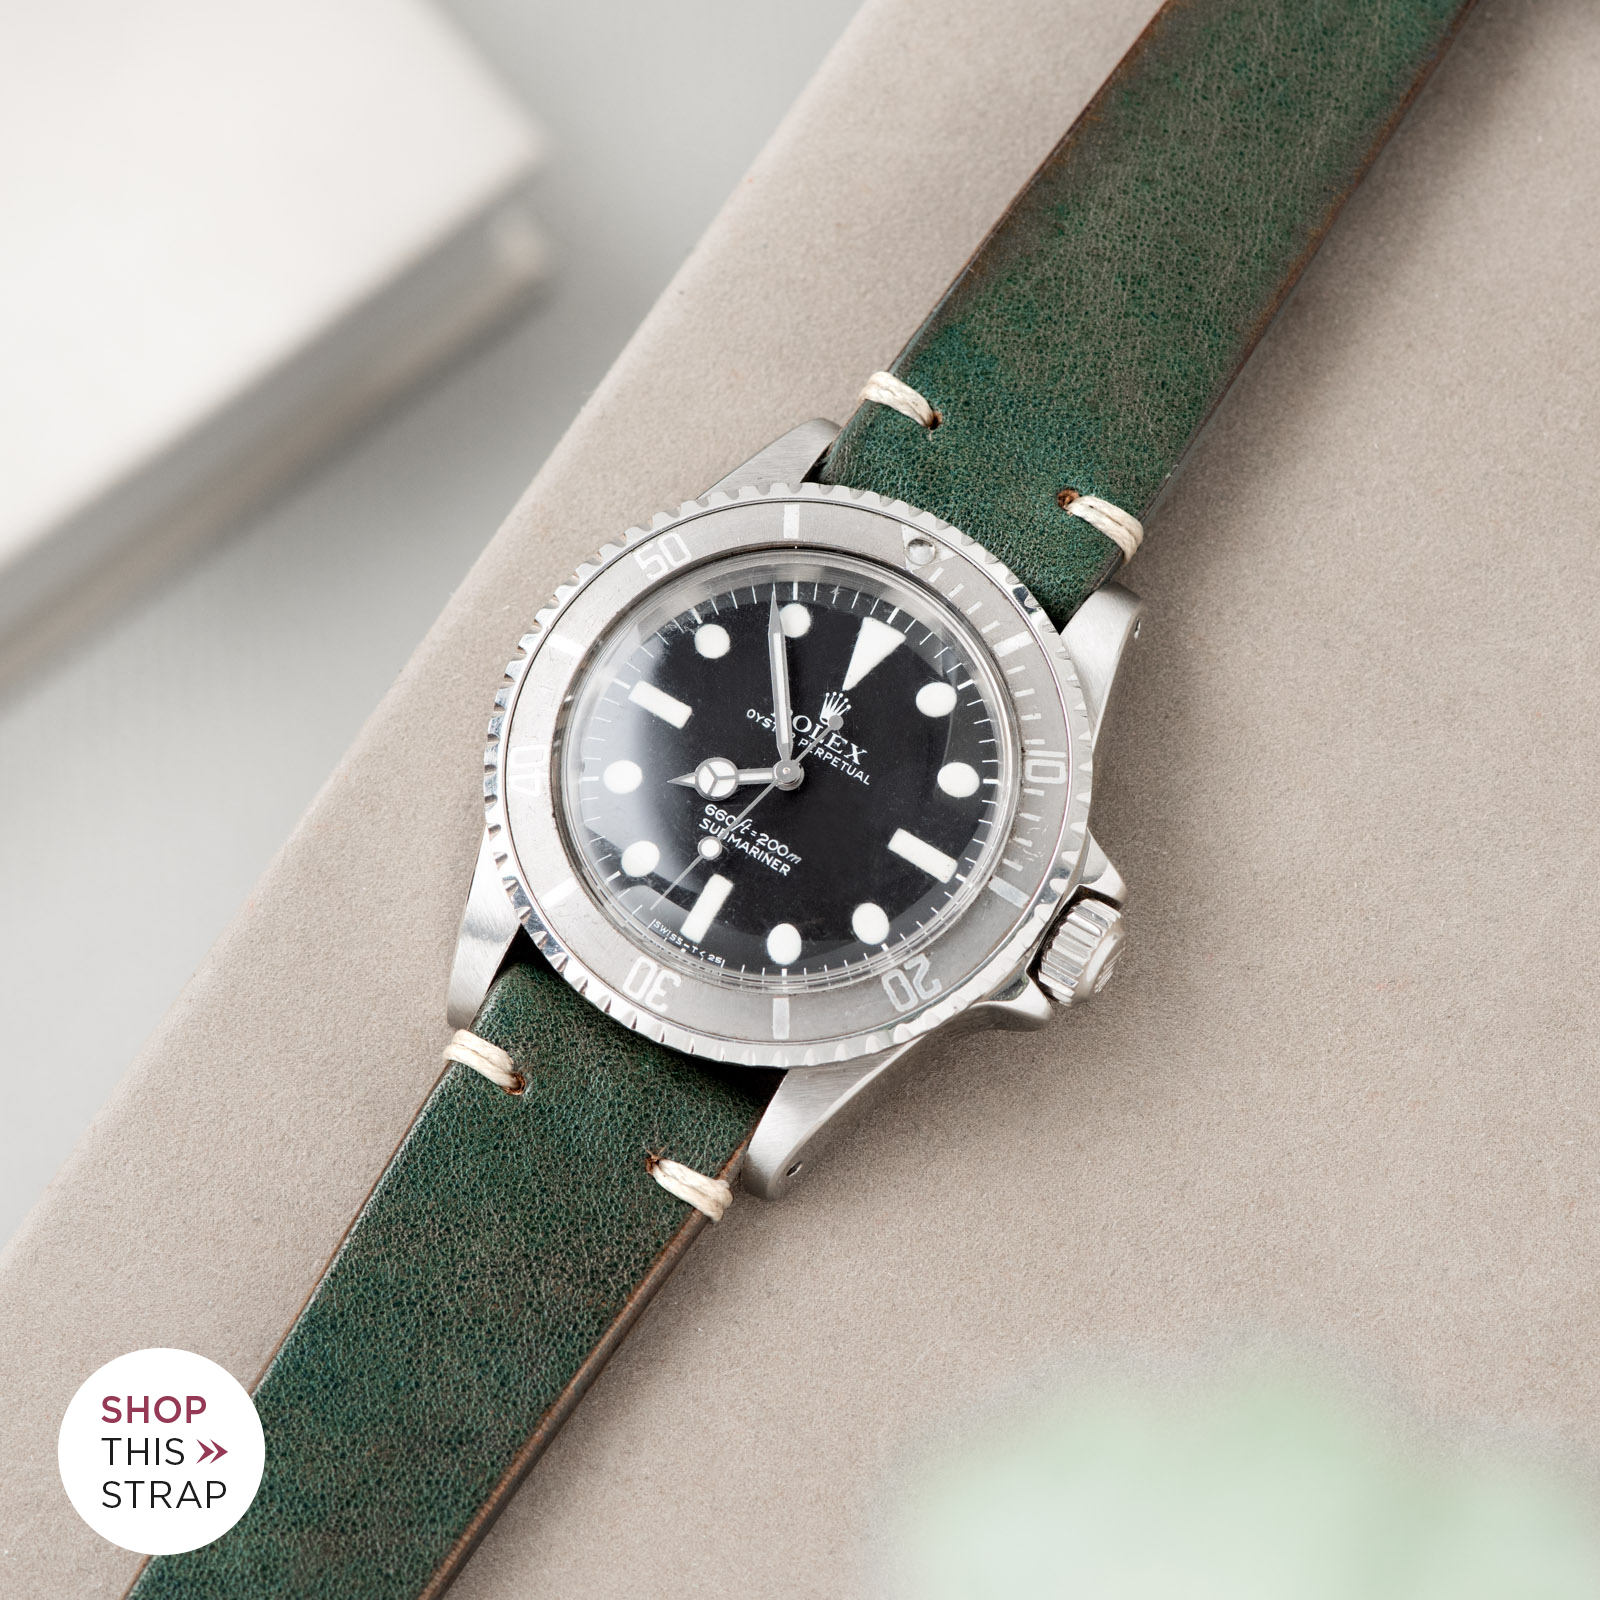 Bulang and Sons_Strap Guide_Rolex Submariner 5513 Faded_Vintage Green Leather Watch Strap